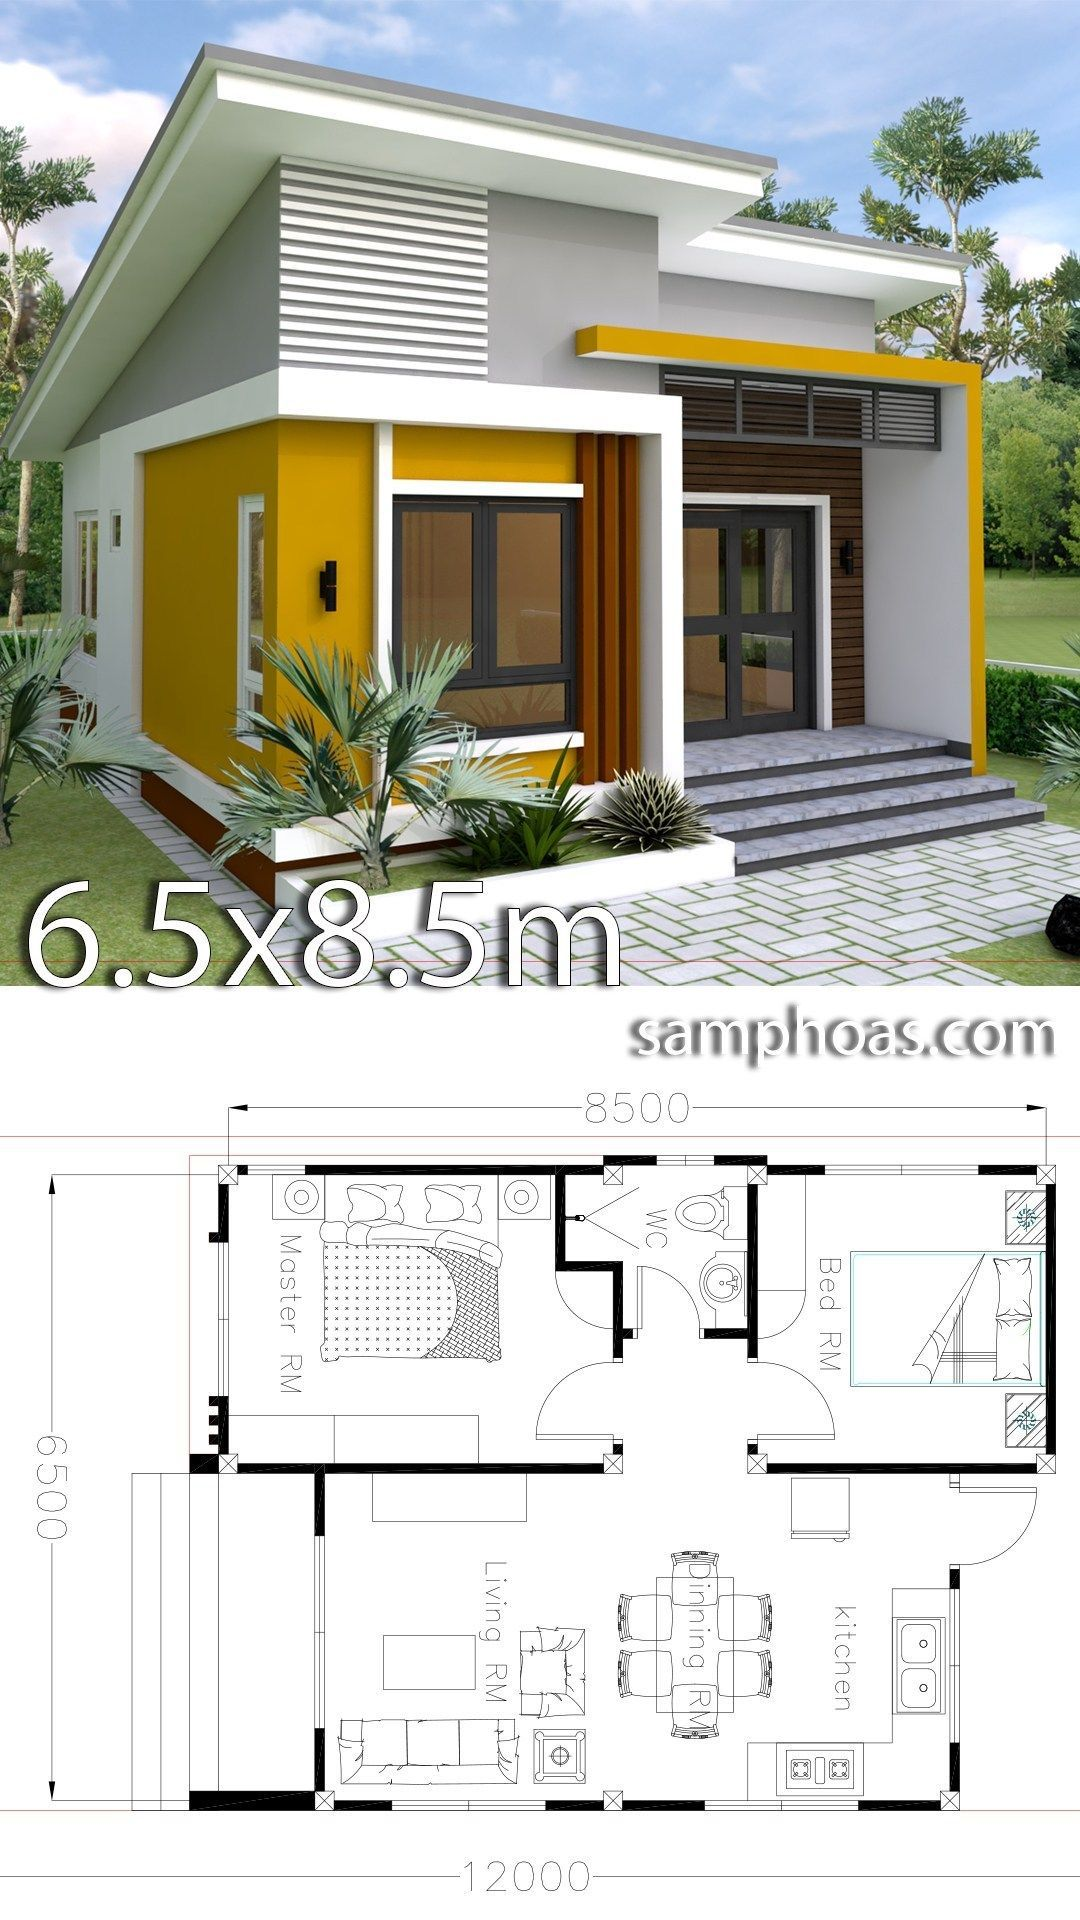 Small Home Design Plan 6 5 8 5m With 2 Bedrooms Samphoas Plan Small House Design Plans Simple House Design Small House Design